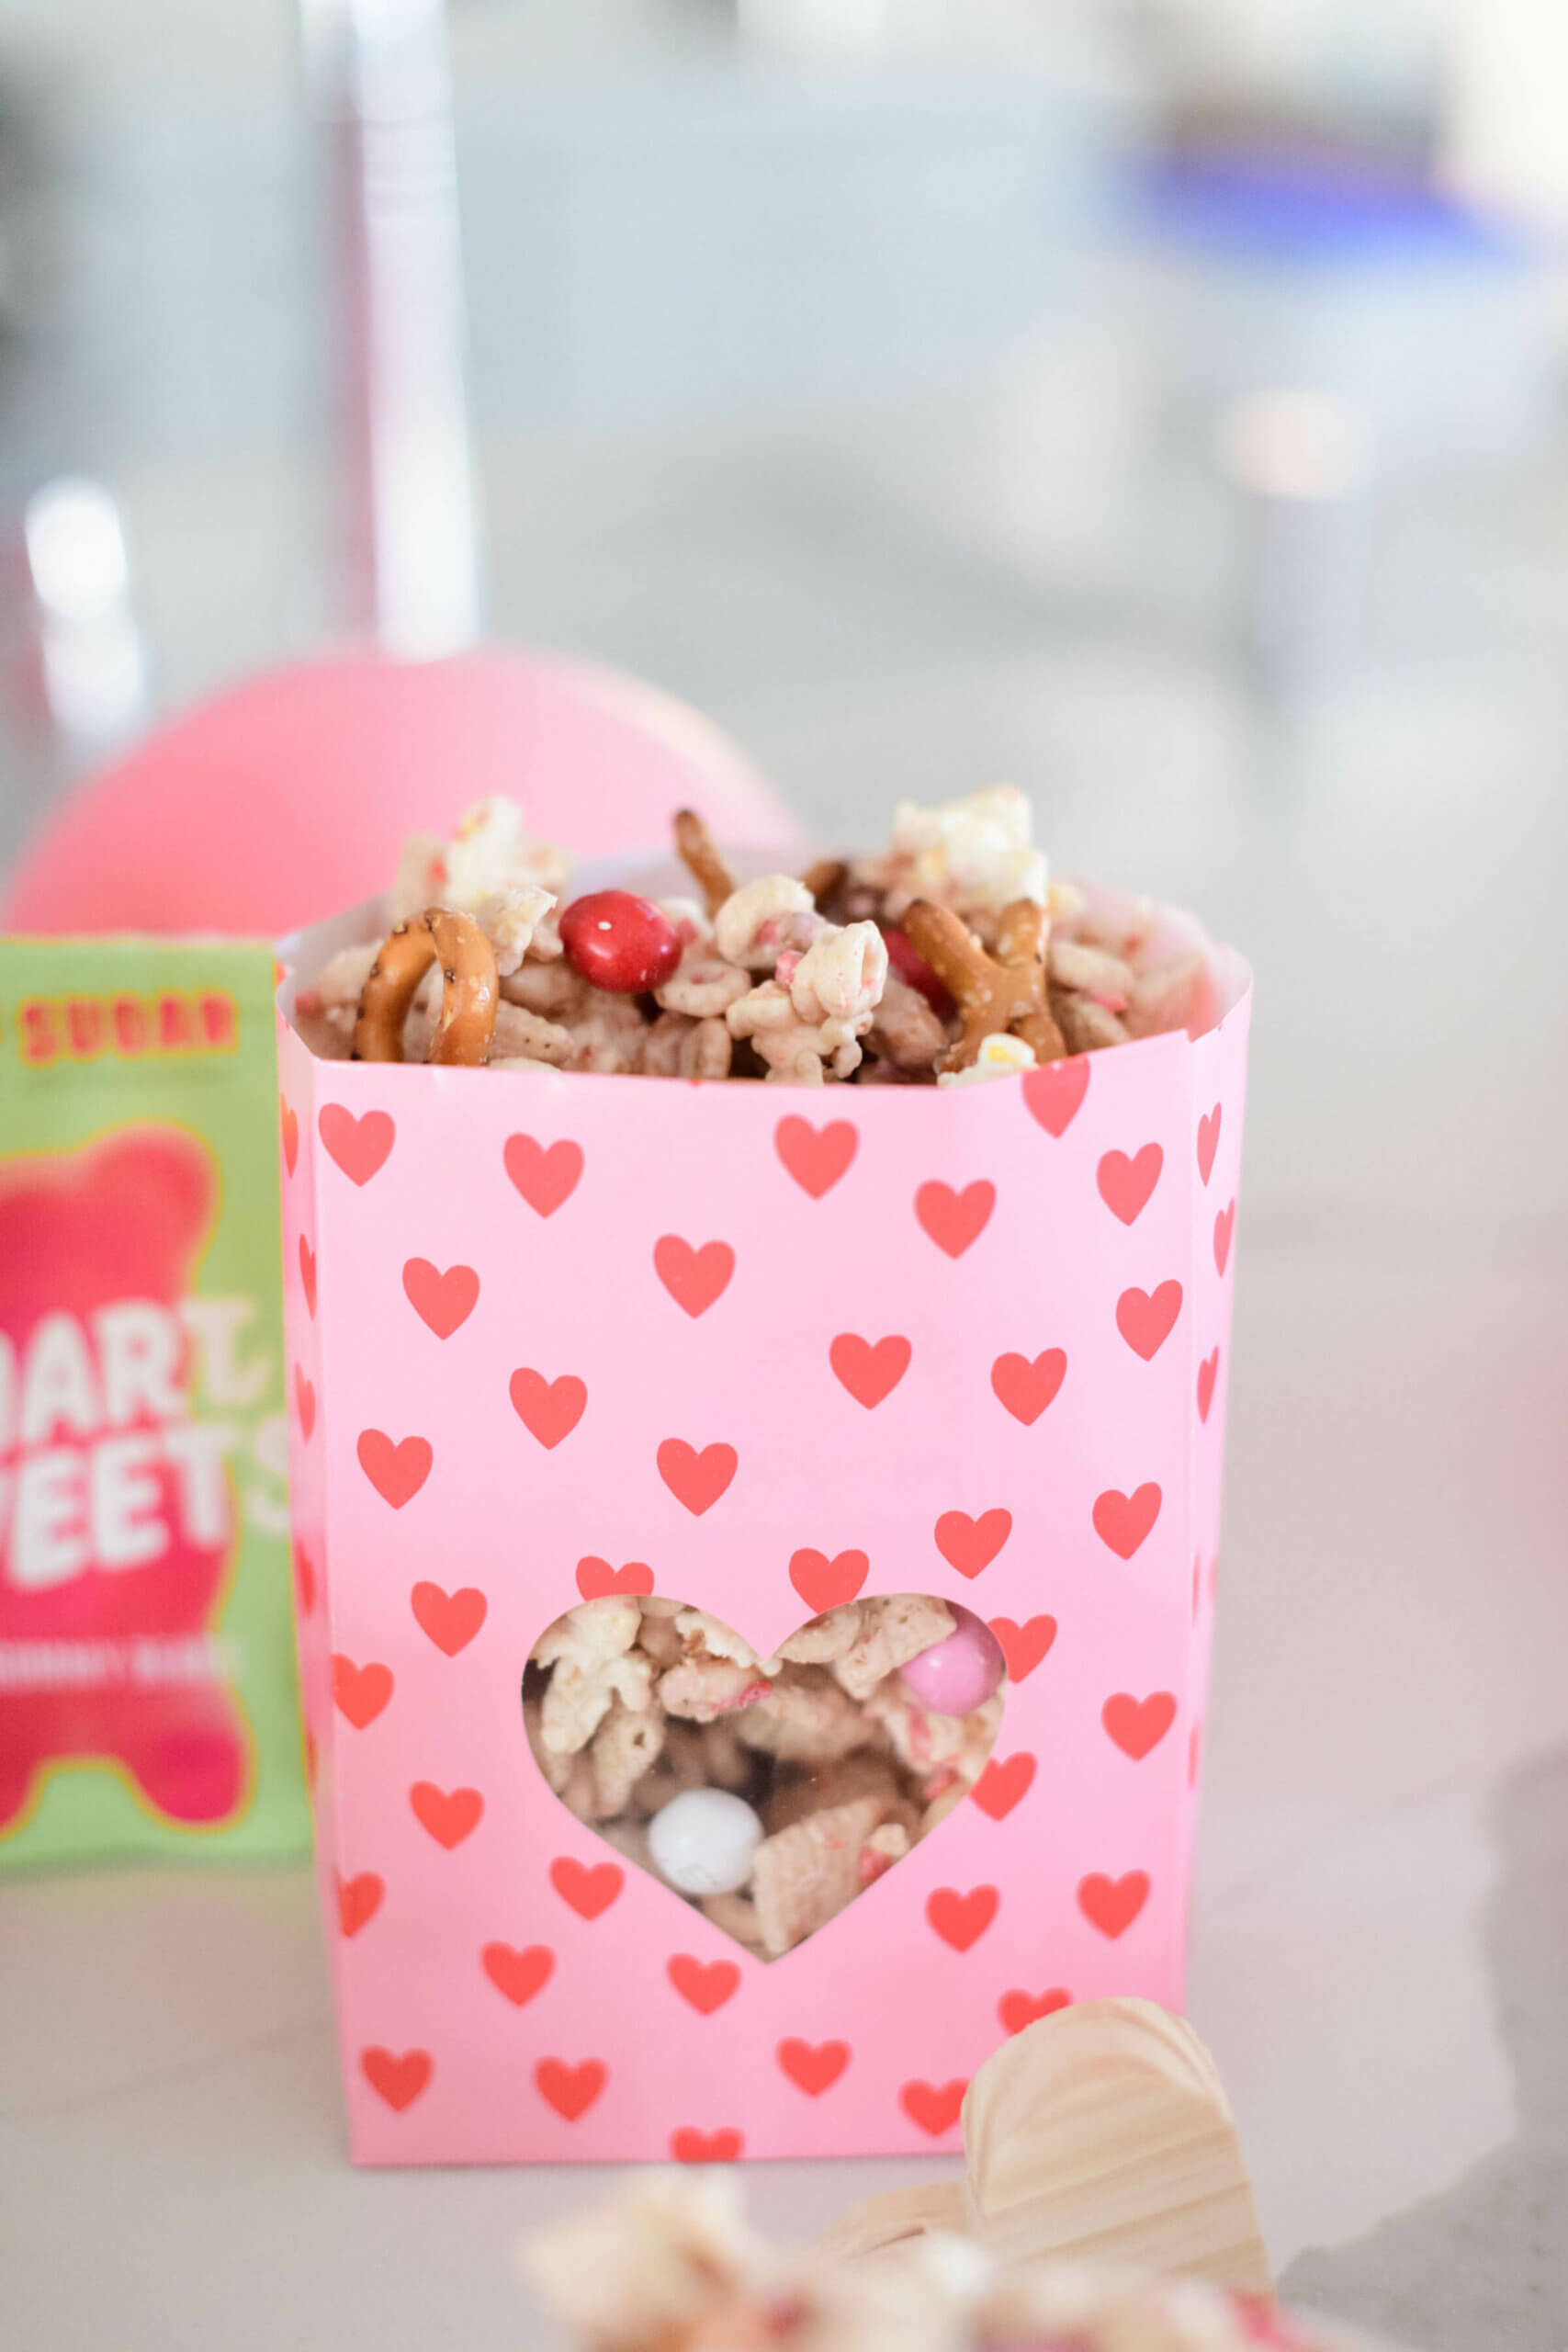 a pink bag with red hearts filling with snack mix